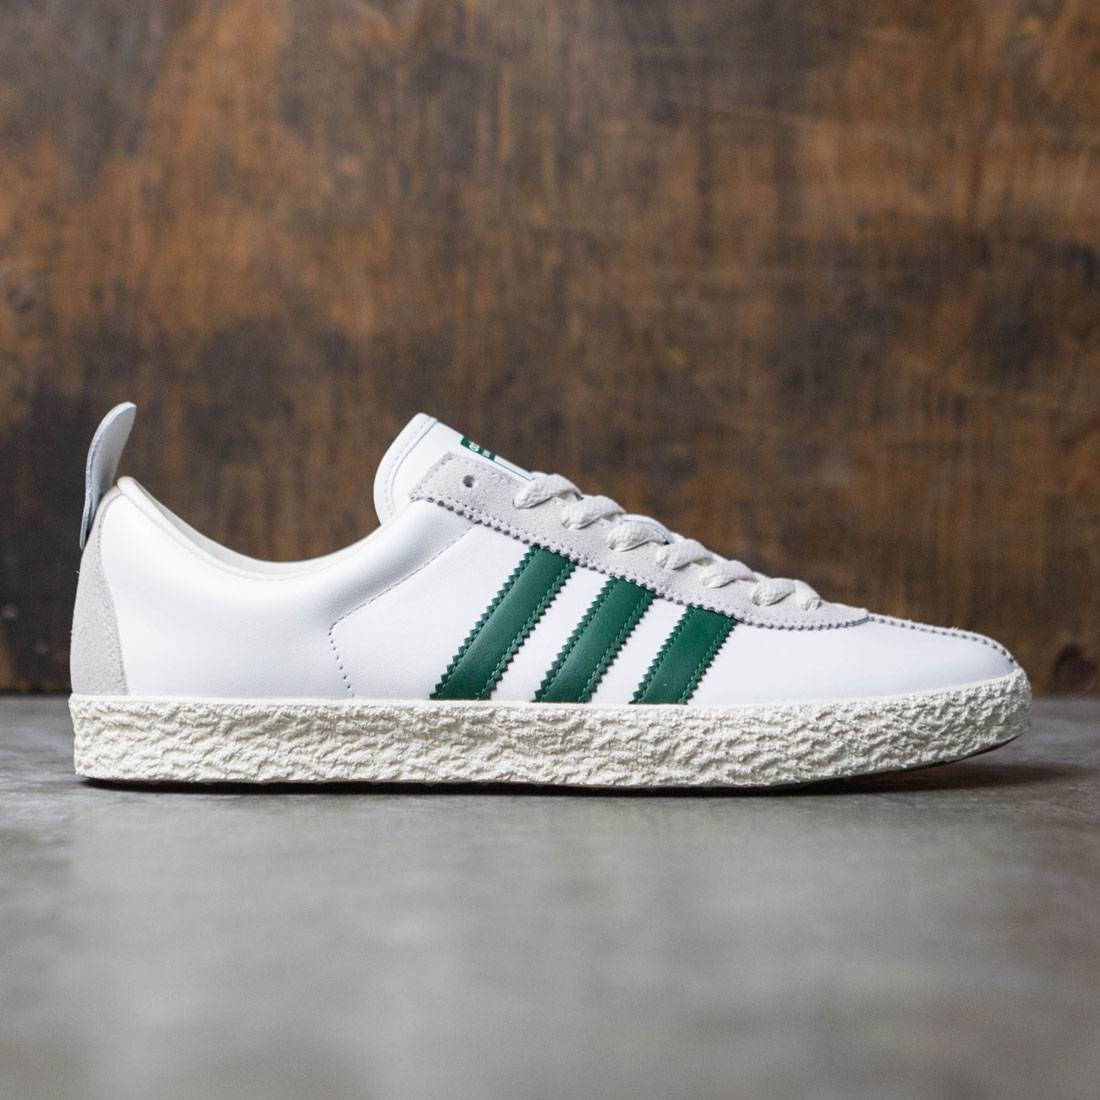 Trainer Spzl Metallic Adidas Adidas Dark Green Gold Men